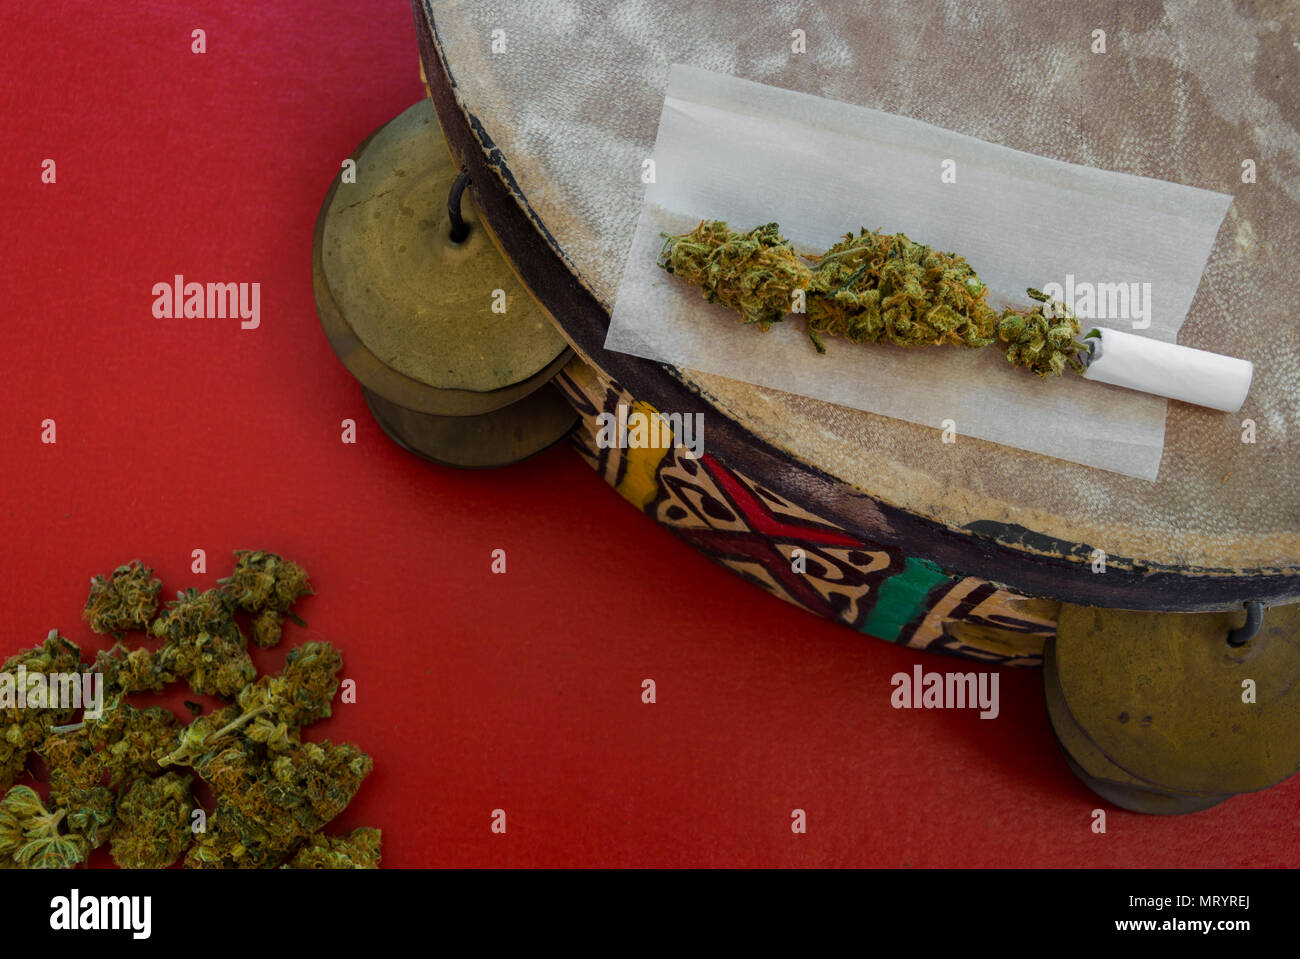 Colorful handmade tambourine with ethnic motif and a joint on it. Red background with a pile of marijuana buds. Concept of art, drugs and inspiration. - Stock Image